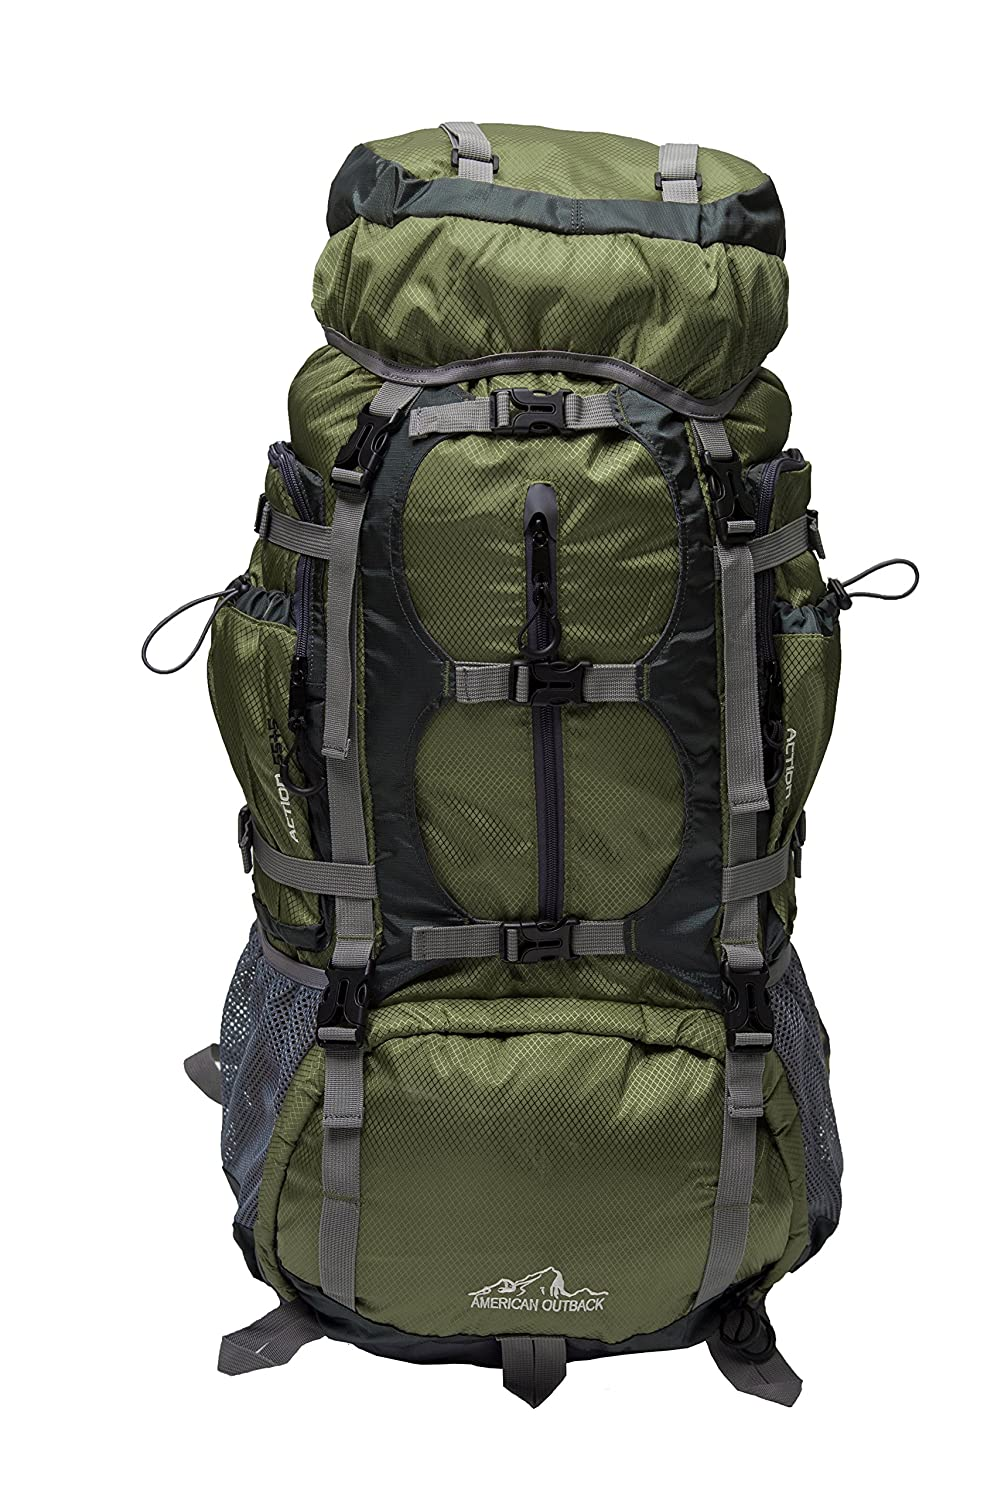 American Outback Glacier Internal Frame Hiking Backpack (Green) B01H0RLZ0Y